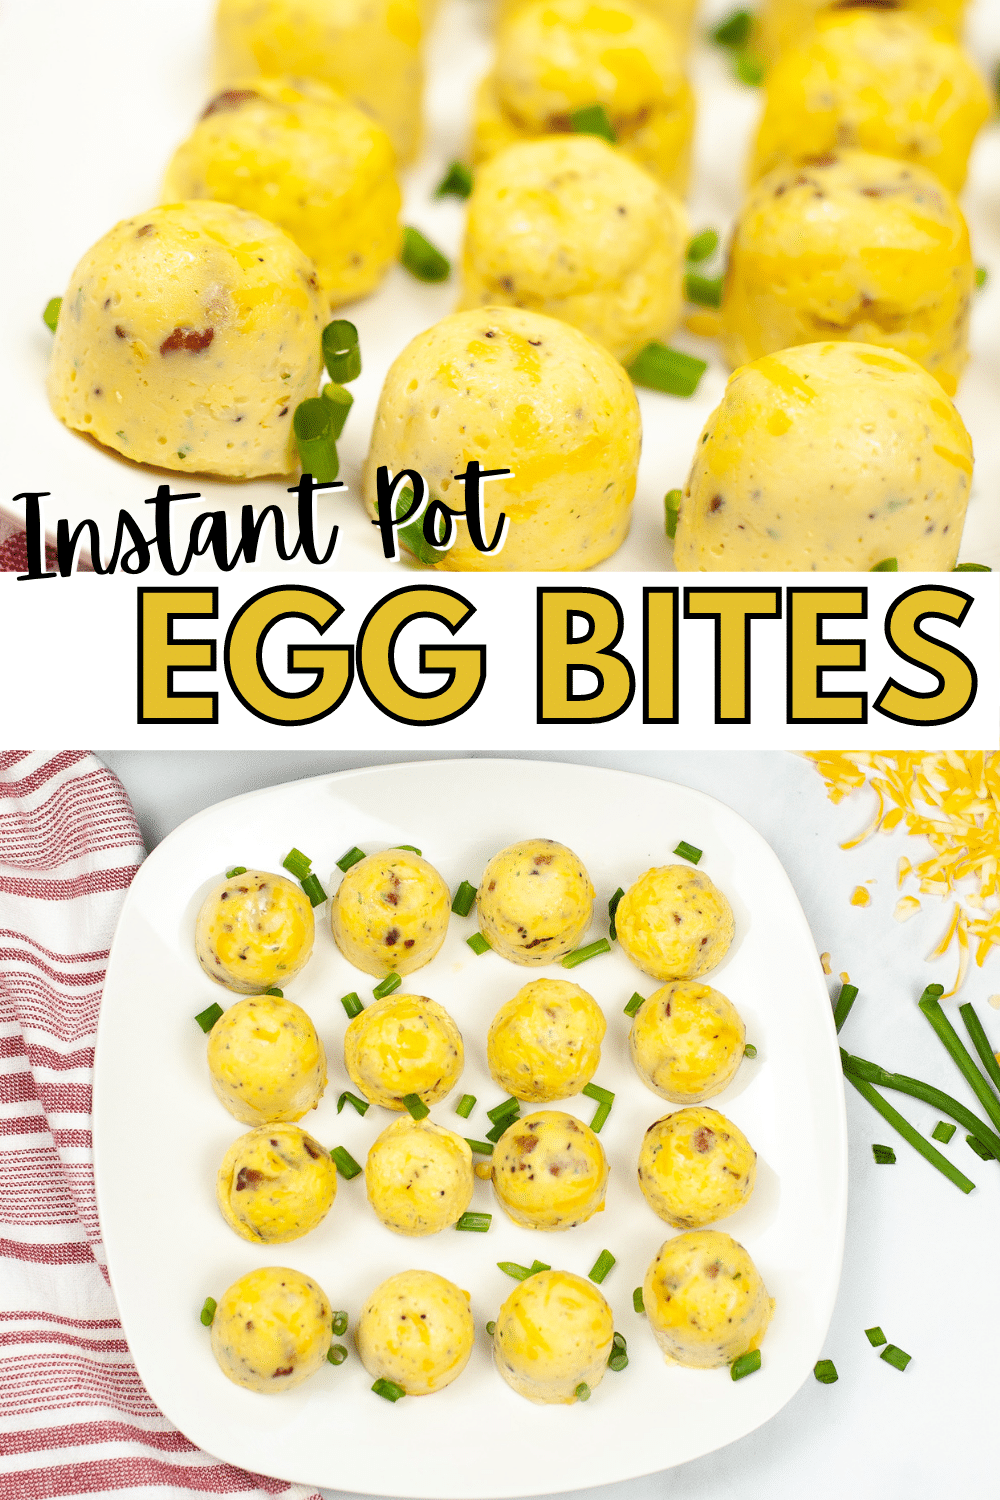 You're going to love these Instant Pot Egg Bites. These high-protein, portable breakfast bites are super easy to make -- just 3 ingredients! #instantpot #pressurecooker #eggbites #breakfast via @wondermomwannab